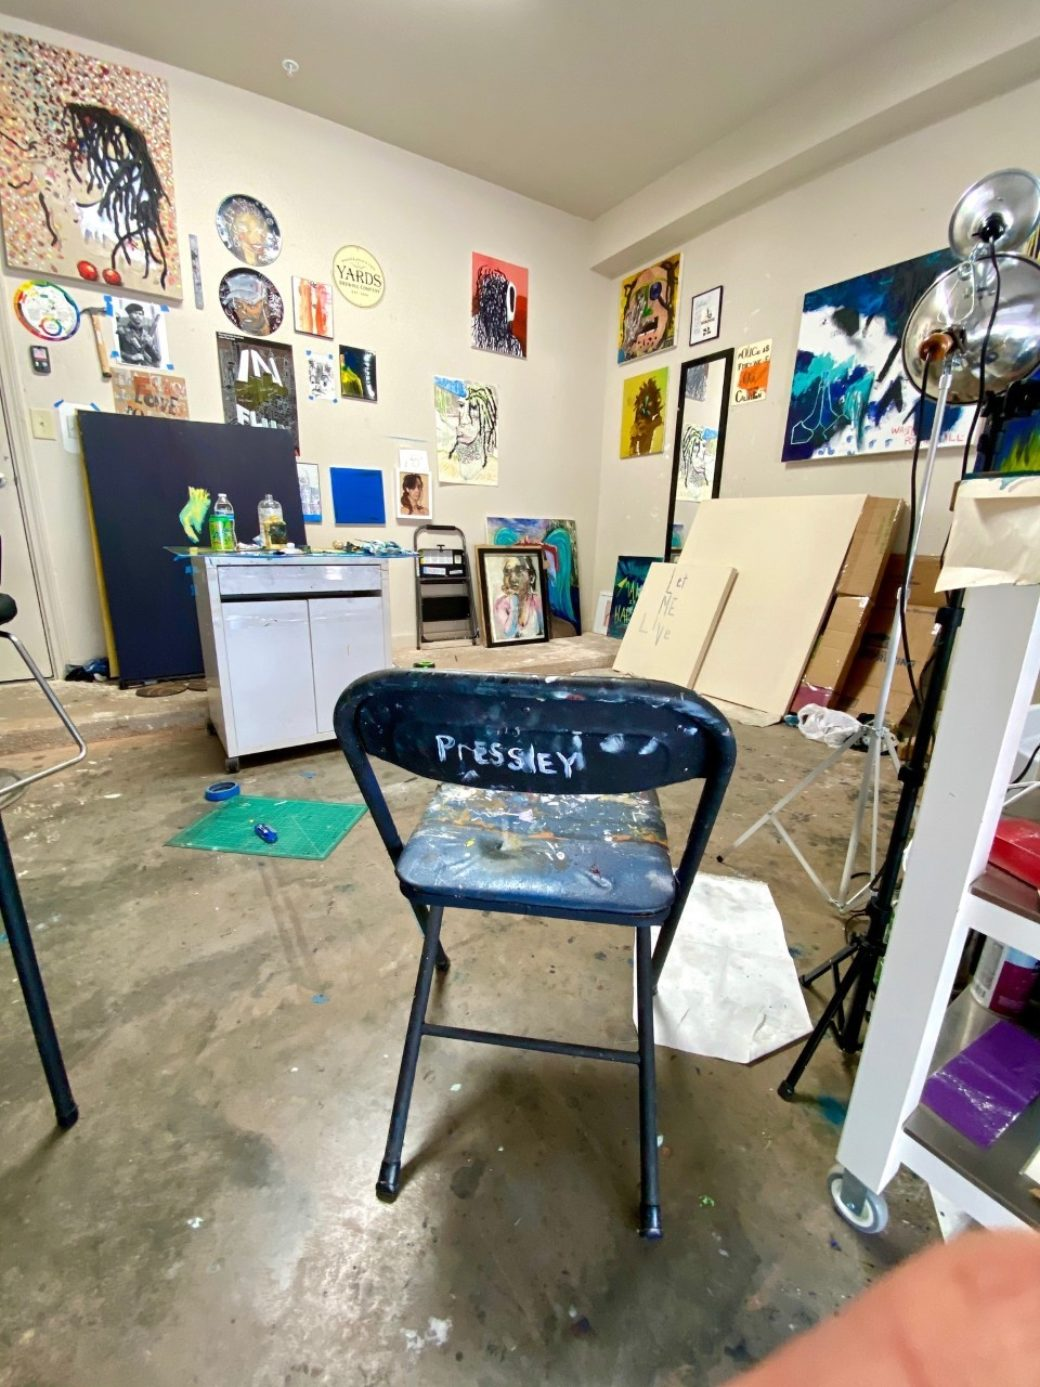 An empty studio featuring vibrant paintings and a metal chair with Pressley written on the back